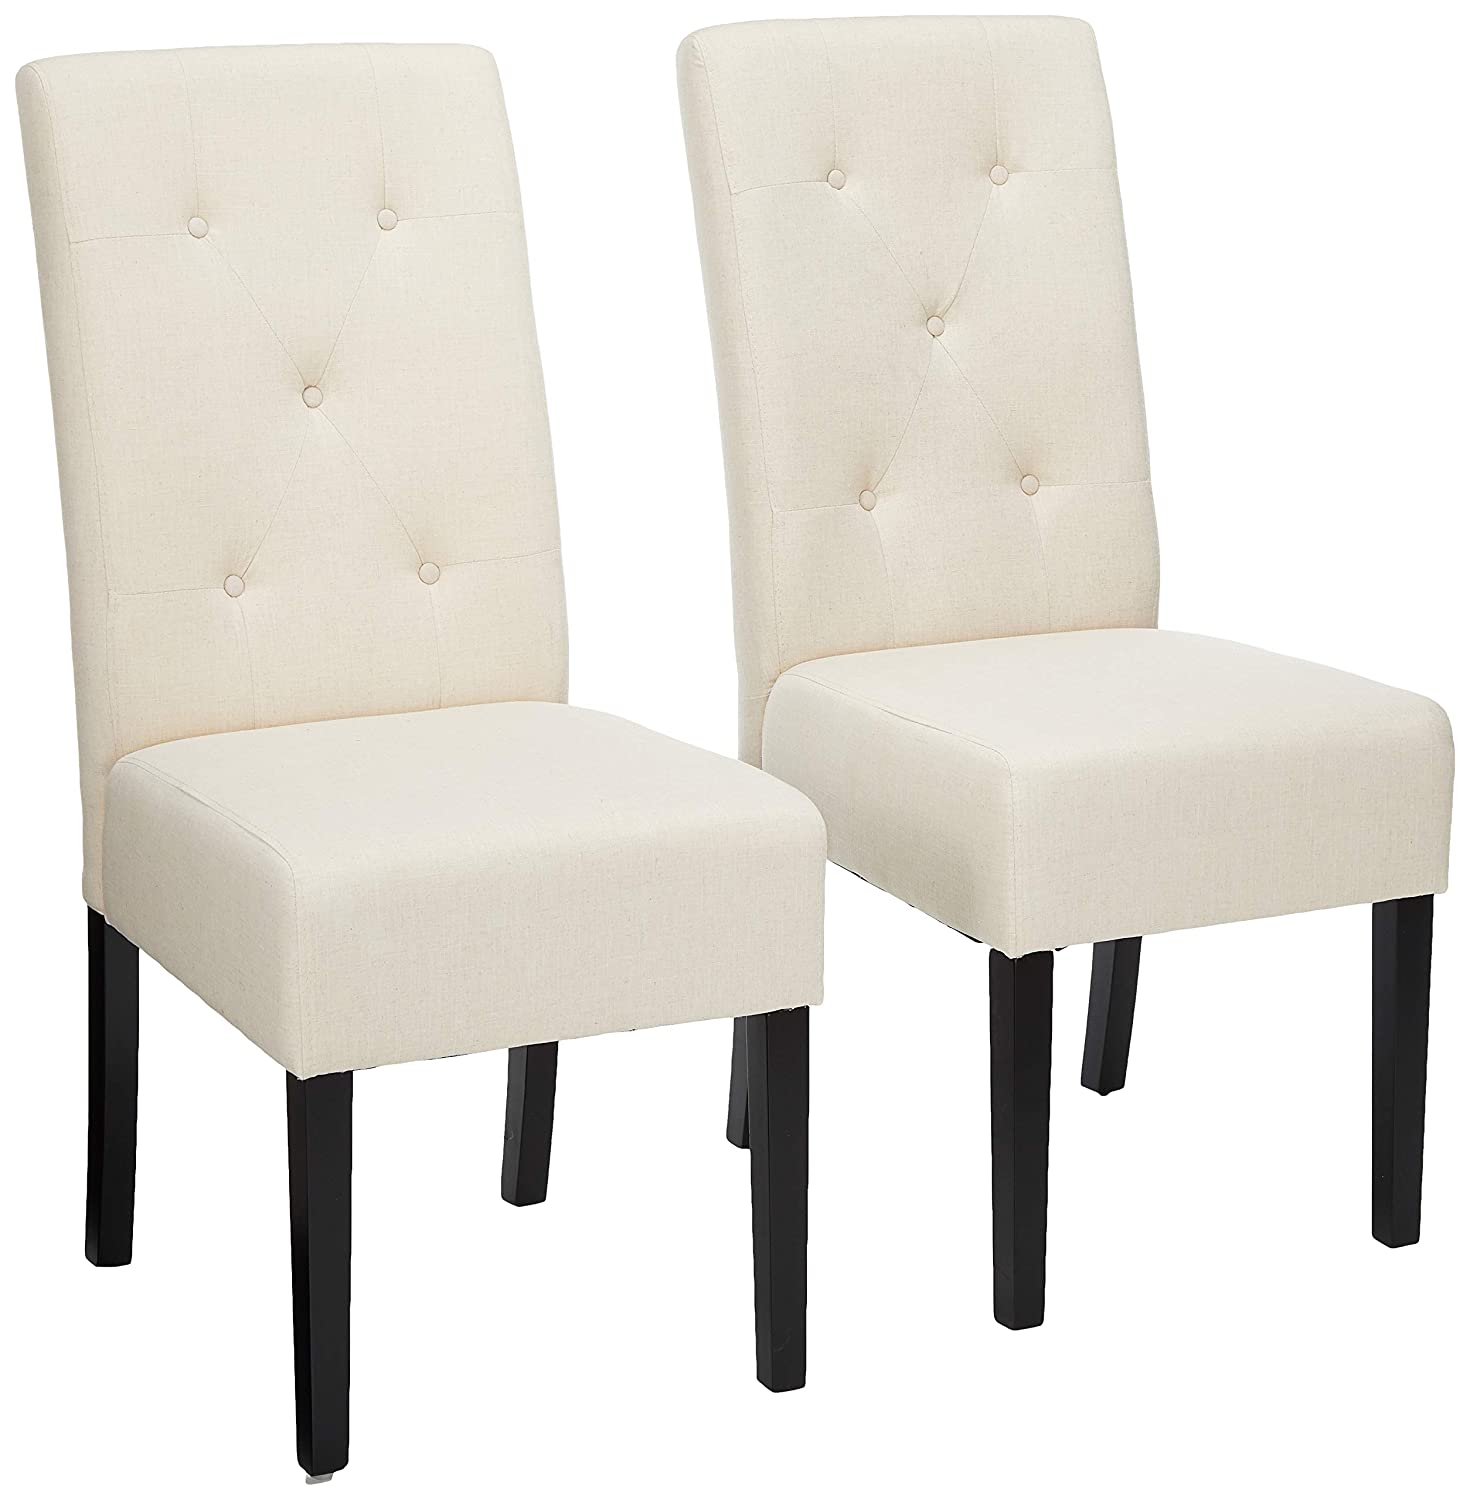 Christopher Knight Home 214518 Alexander Natural Fabric Dining Chair (Set of 2), 39.50 inches high x 17.50 inches Wide x 25.5 inches deep, Plain